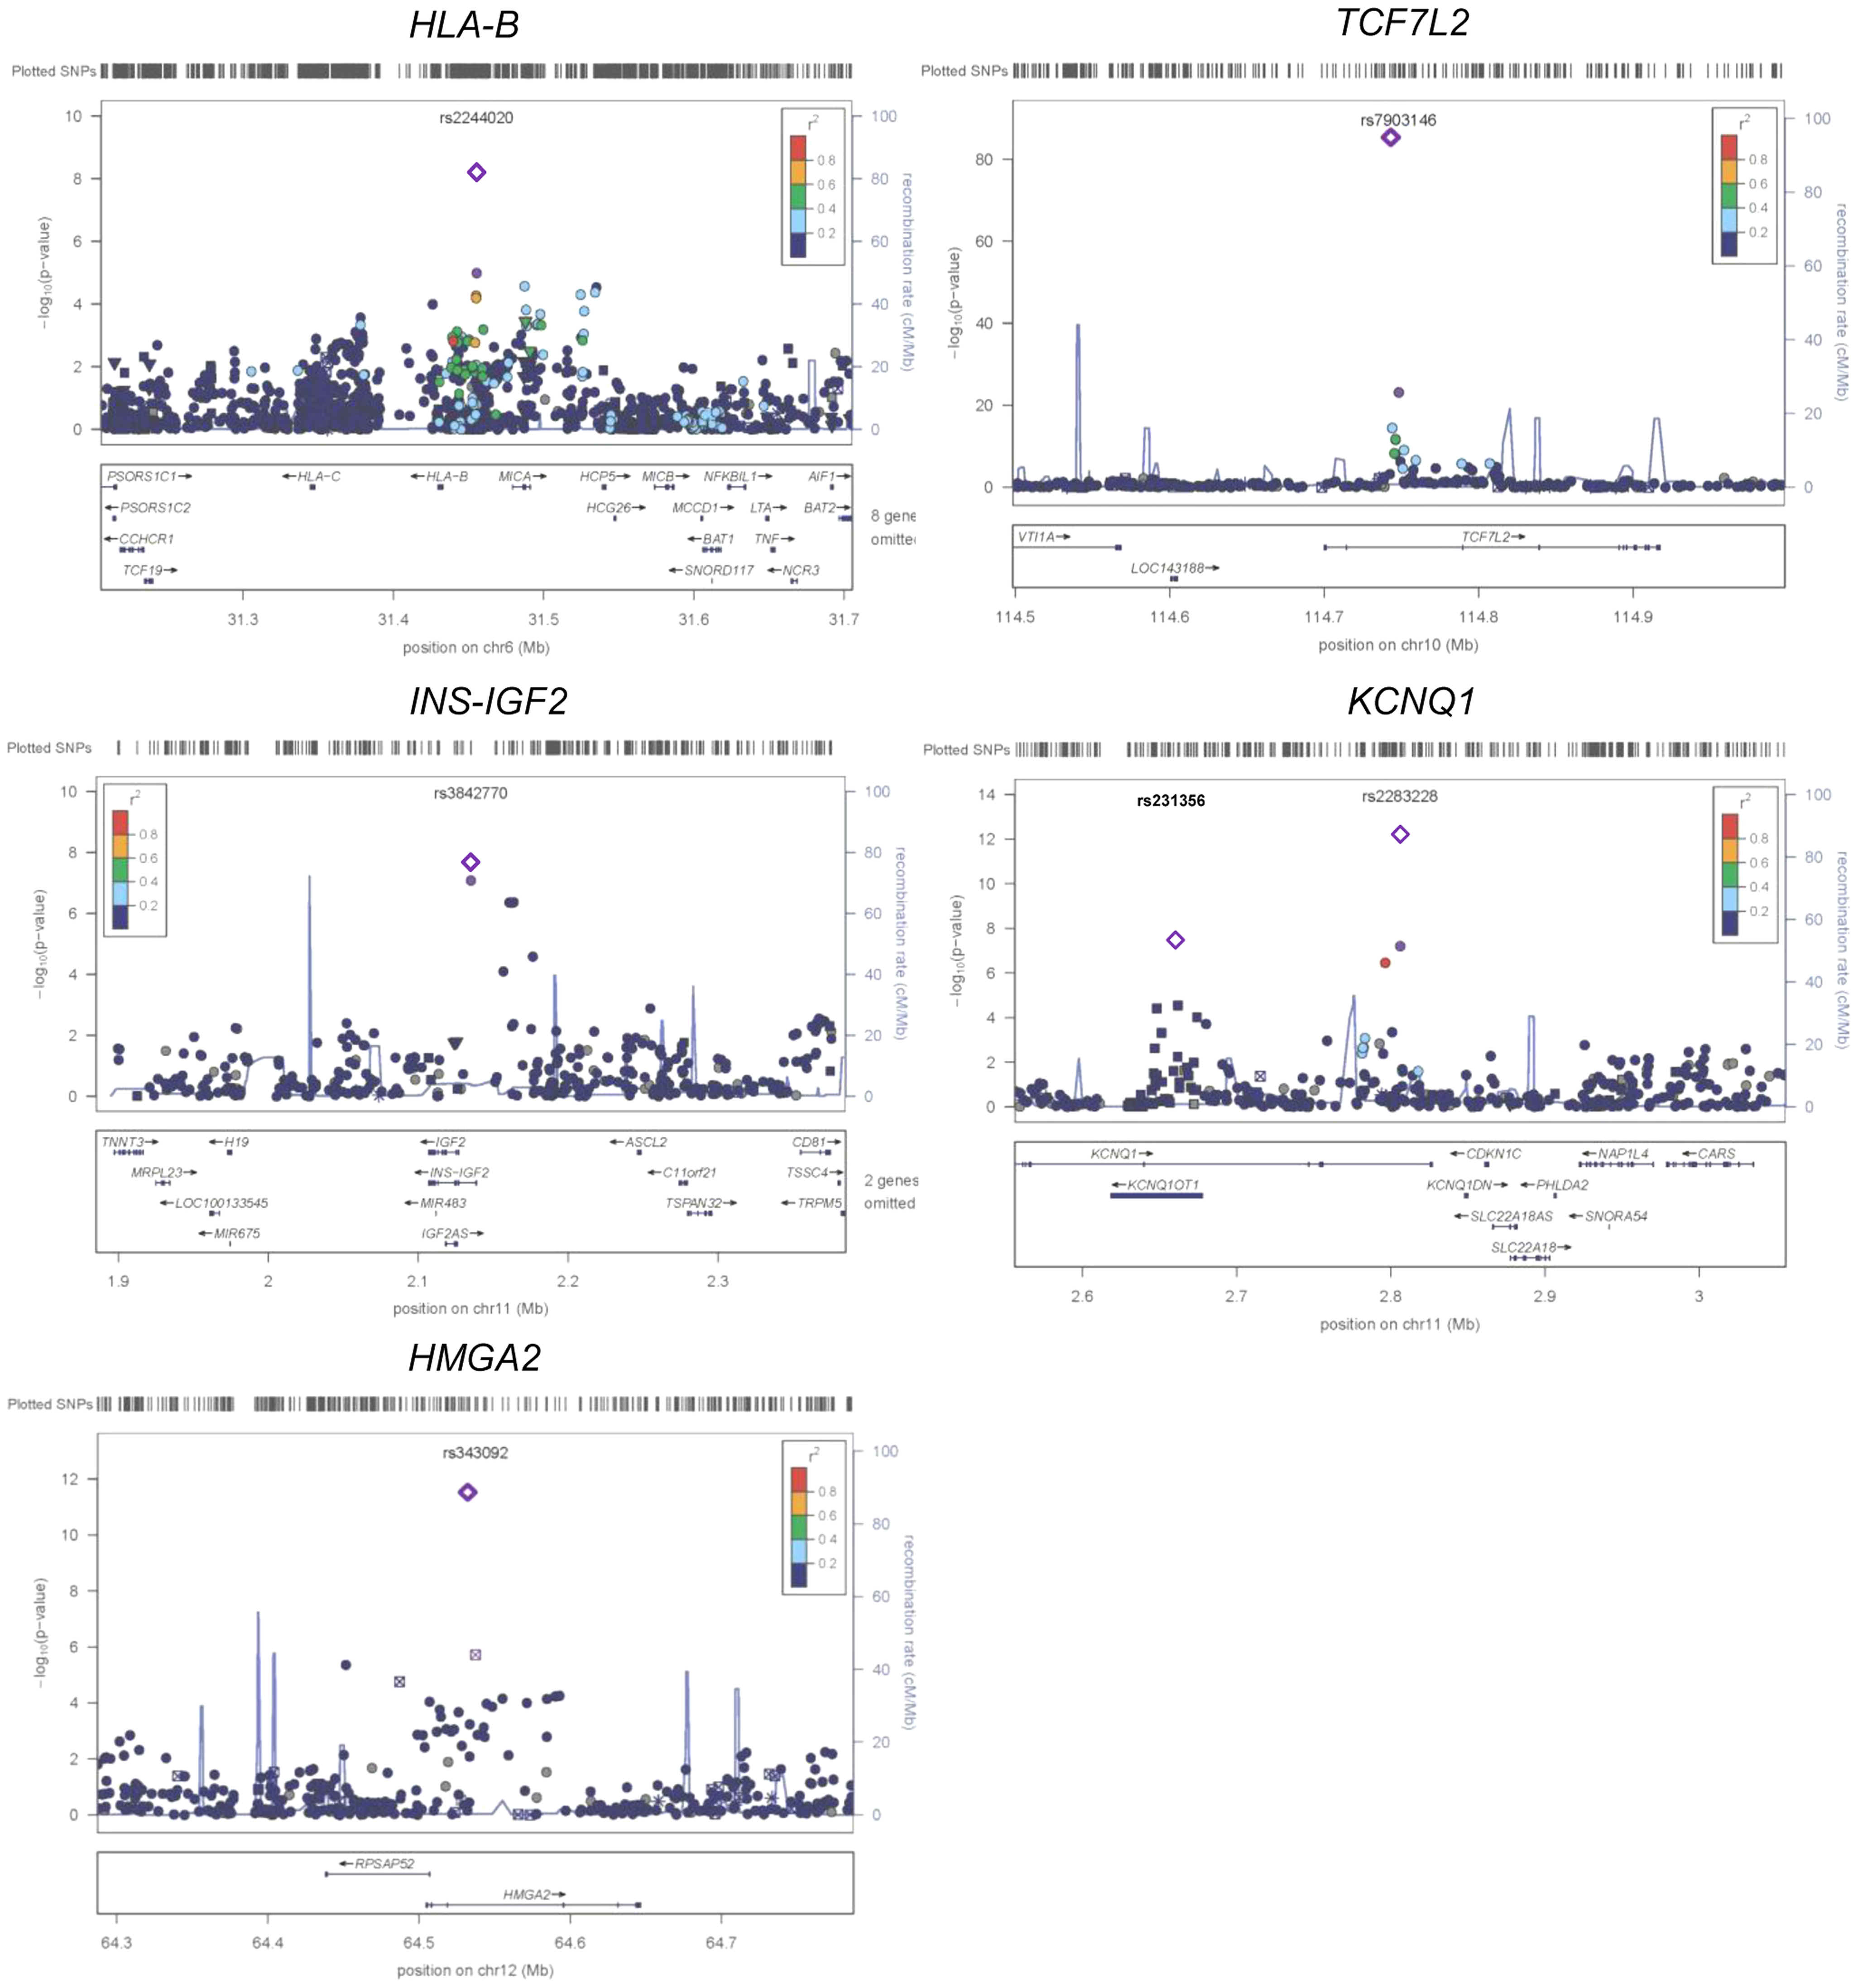 Regional plots of five previously and newly identified T2D loci in African Americans.